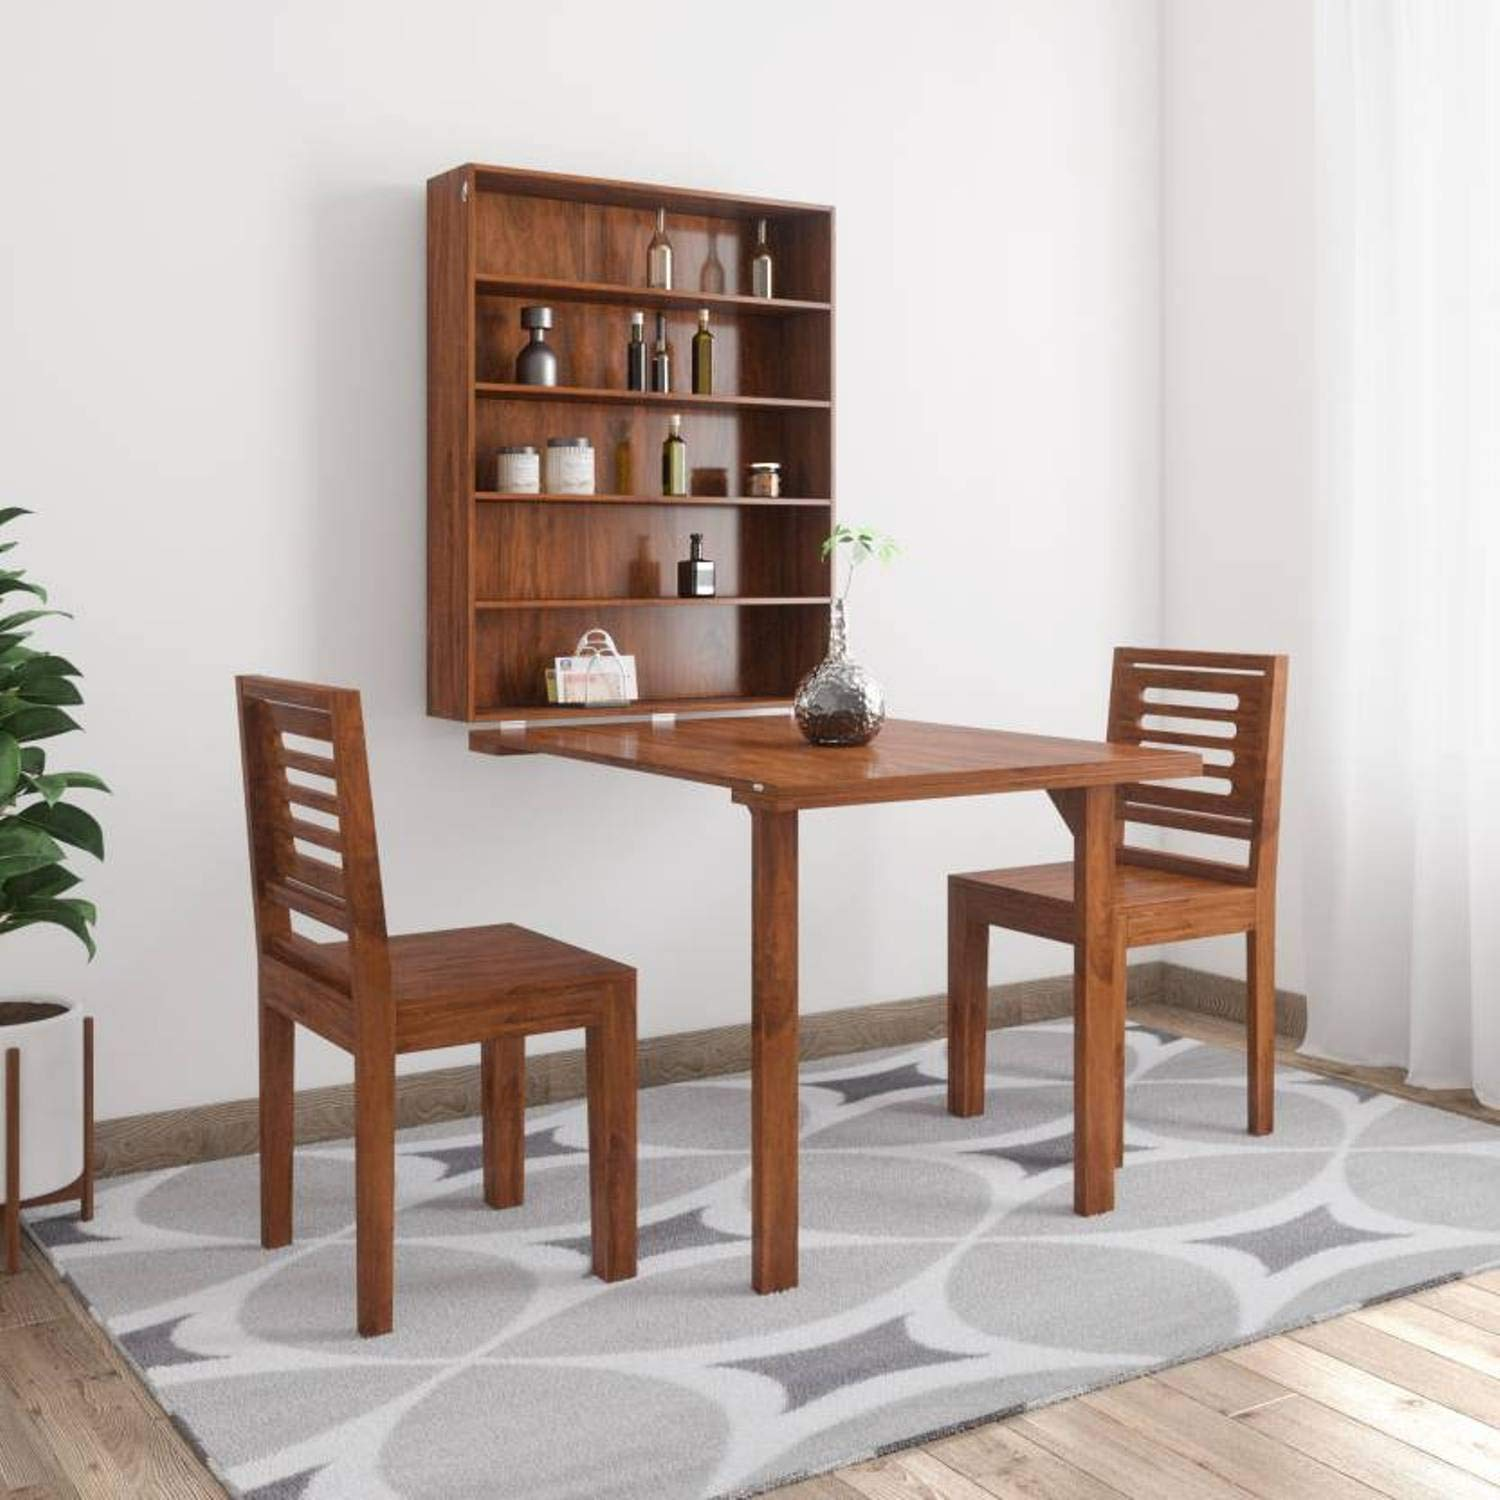 Js Home Decor Sheesham Wood Folding Dining Table With 2 Chairs For